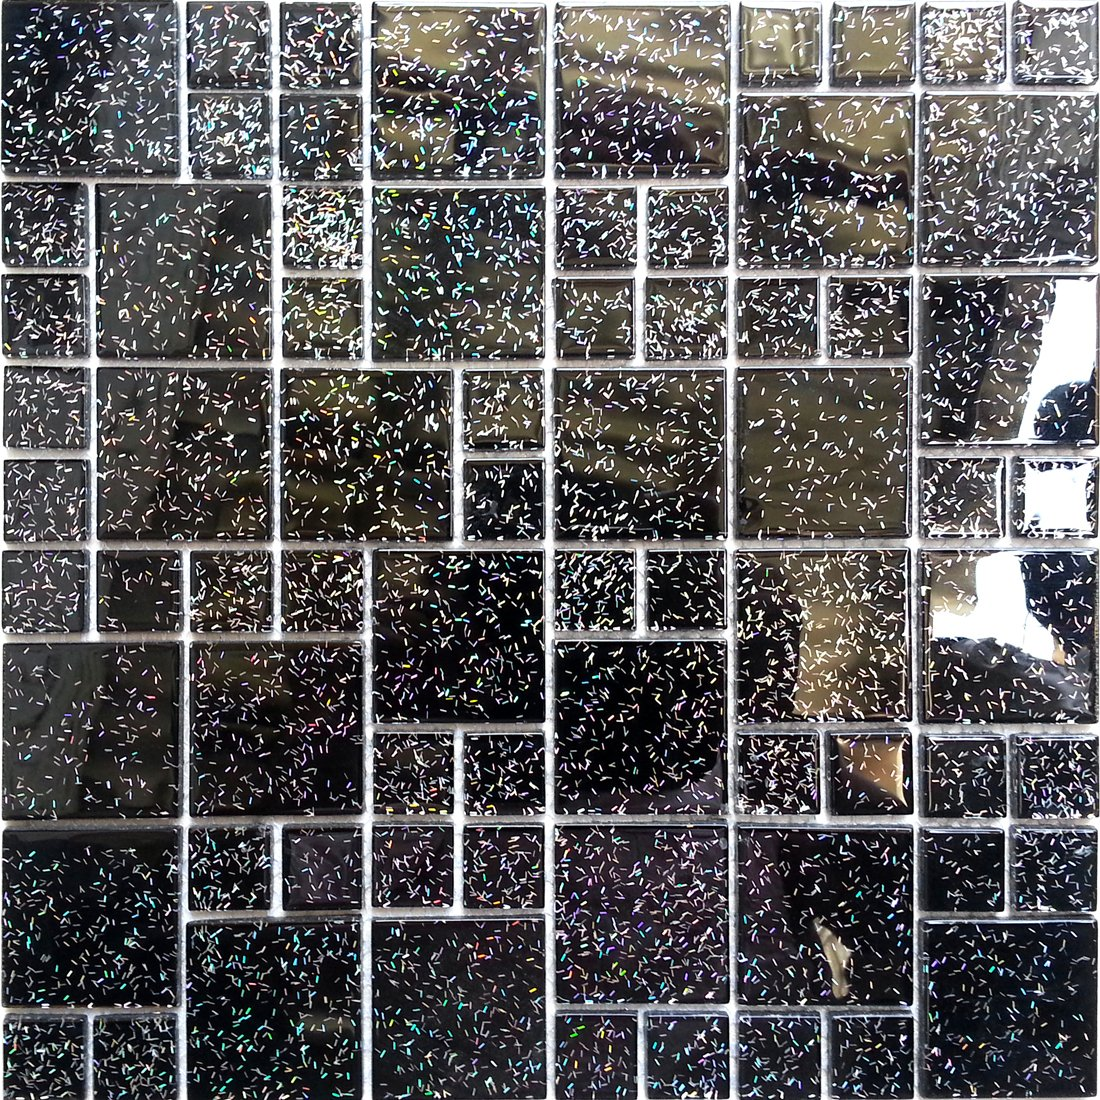 30cm x 30cm black glitter modular mix glass mosaic tiles sheet 30cm x 30cm black glitter modular mix glass mosaic tiles sheet mt0011 amazon diy tools dailygadgetfo Image collections